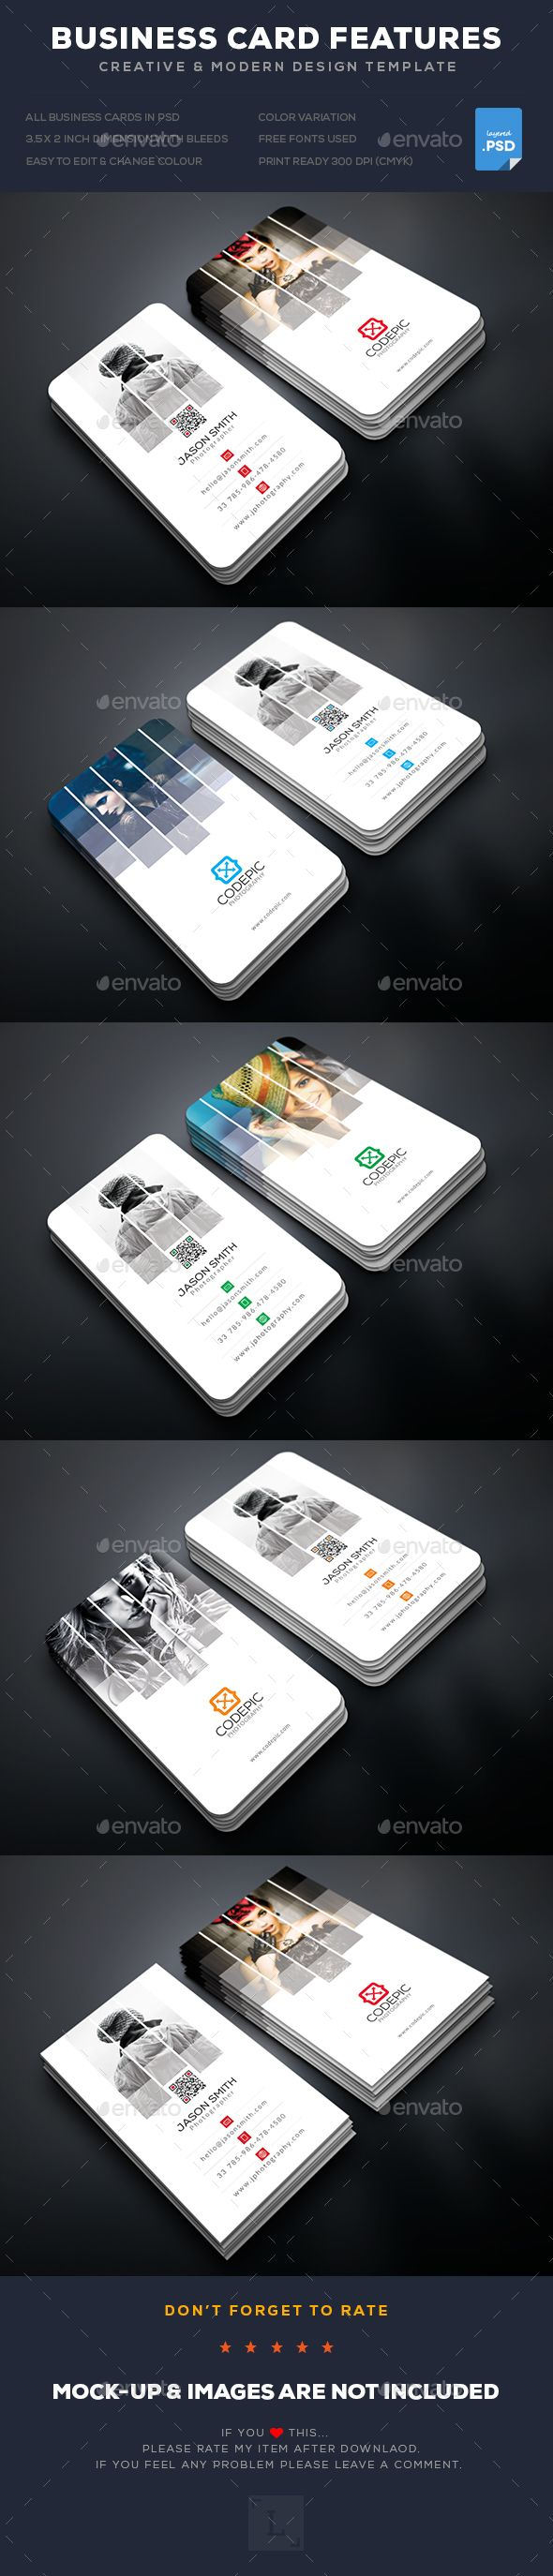 Shade Photography Business Card | Photography business cards ...